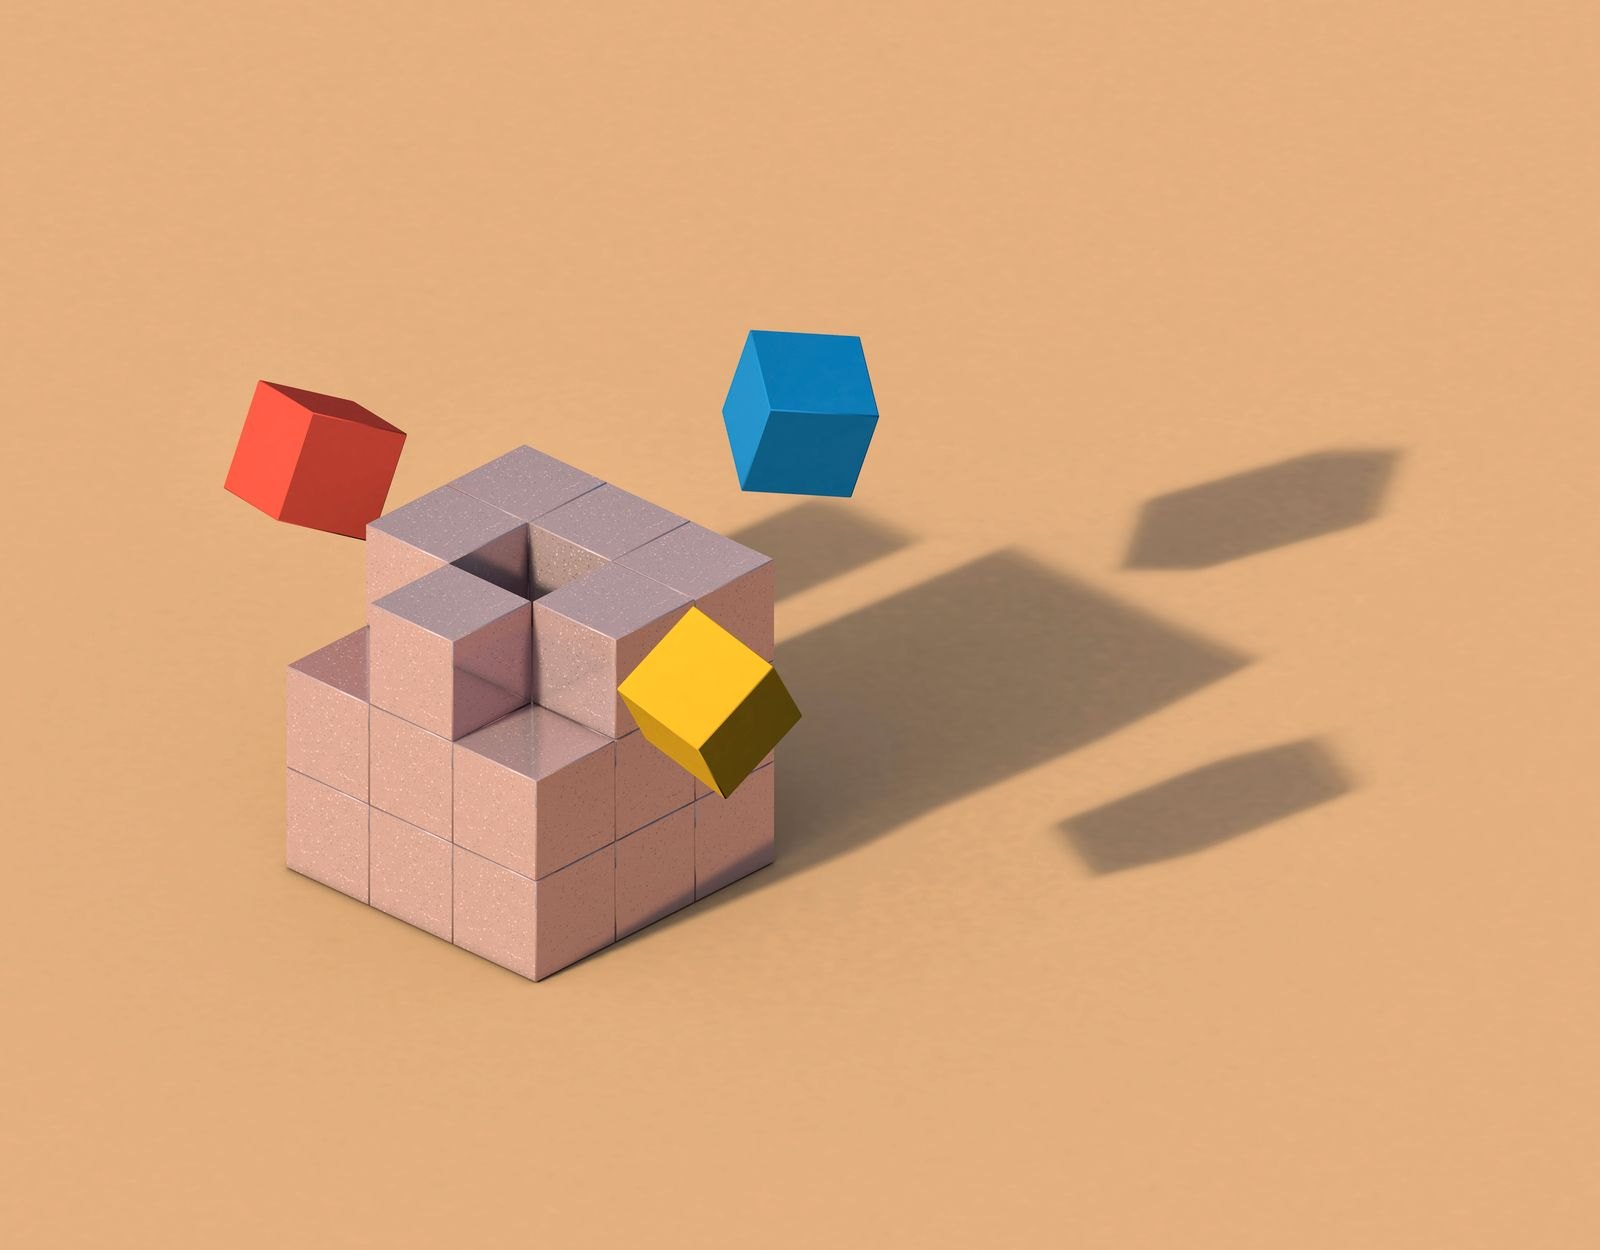 Flying cubes forming anthropomorphic shadow